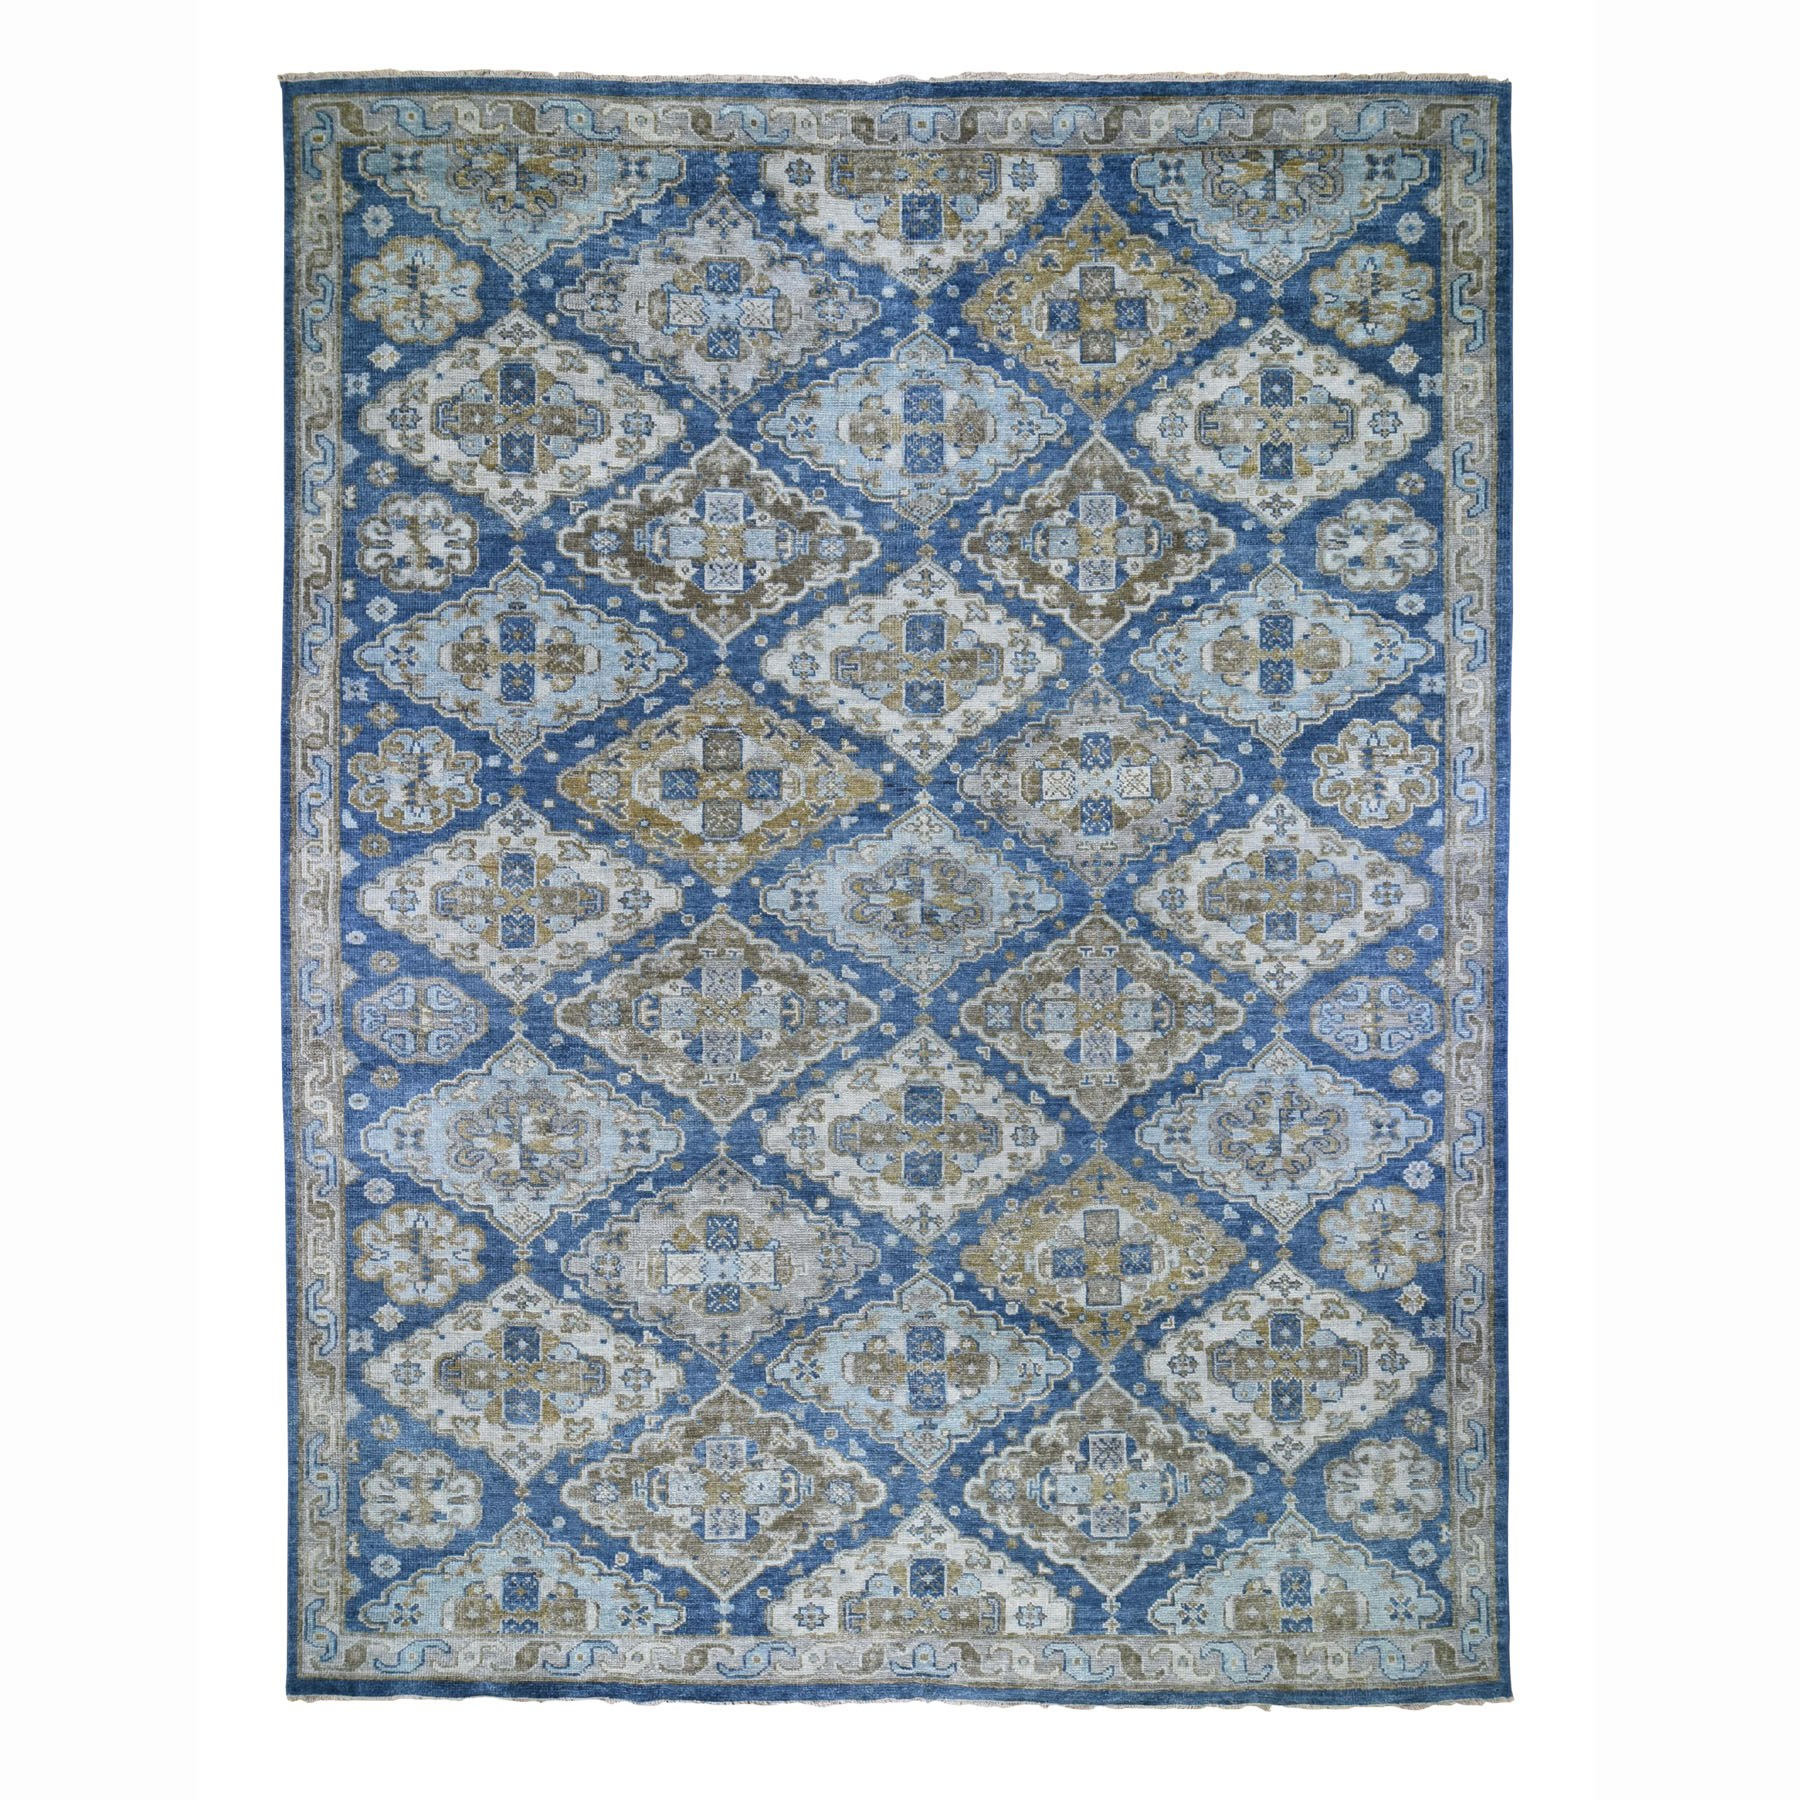 """11'9""""X15' Oversized Blue Supple Collection With Oushak Design Hand Knotted Soft Wool Oriental Rug moad78d9"""